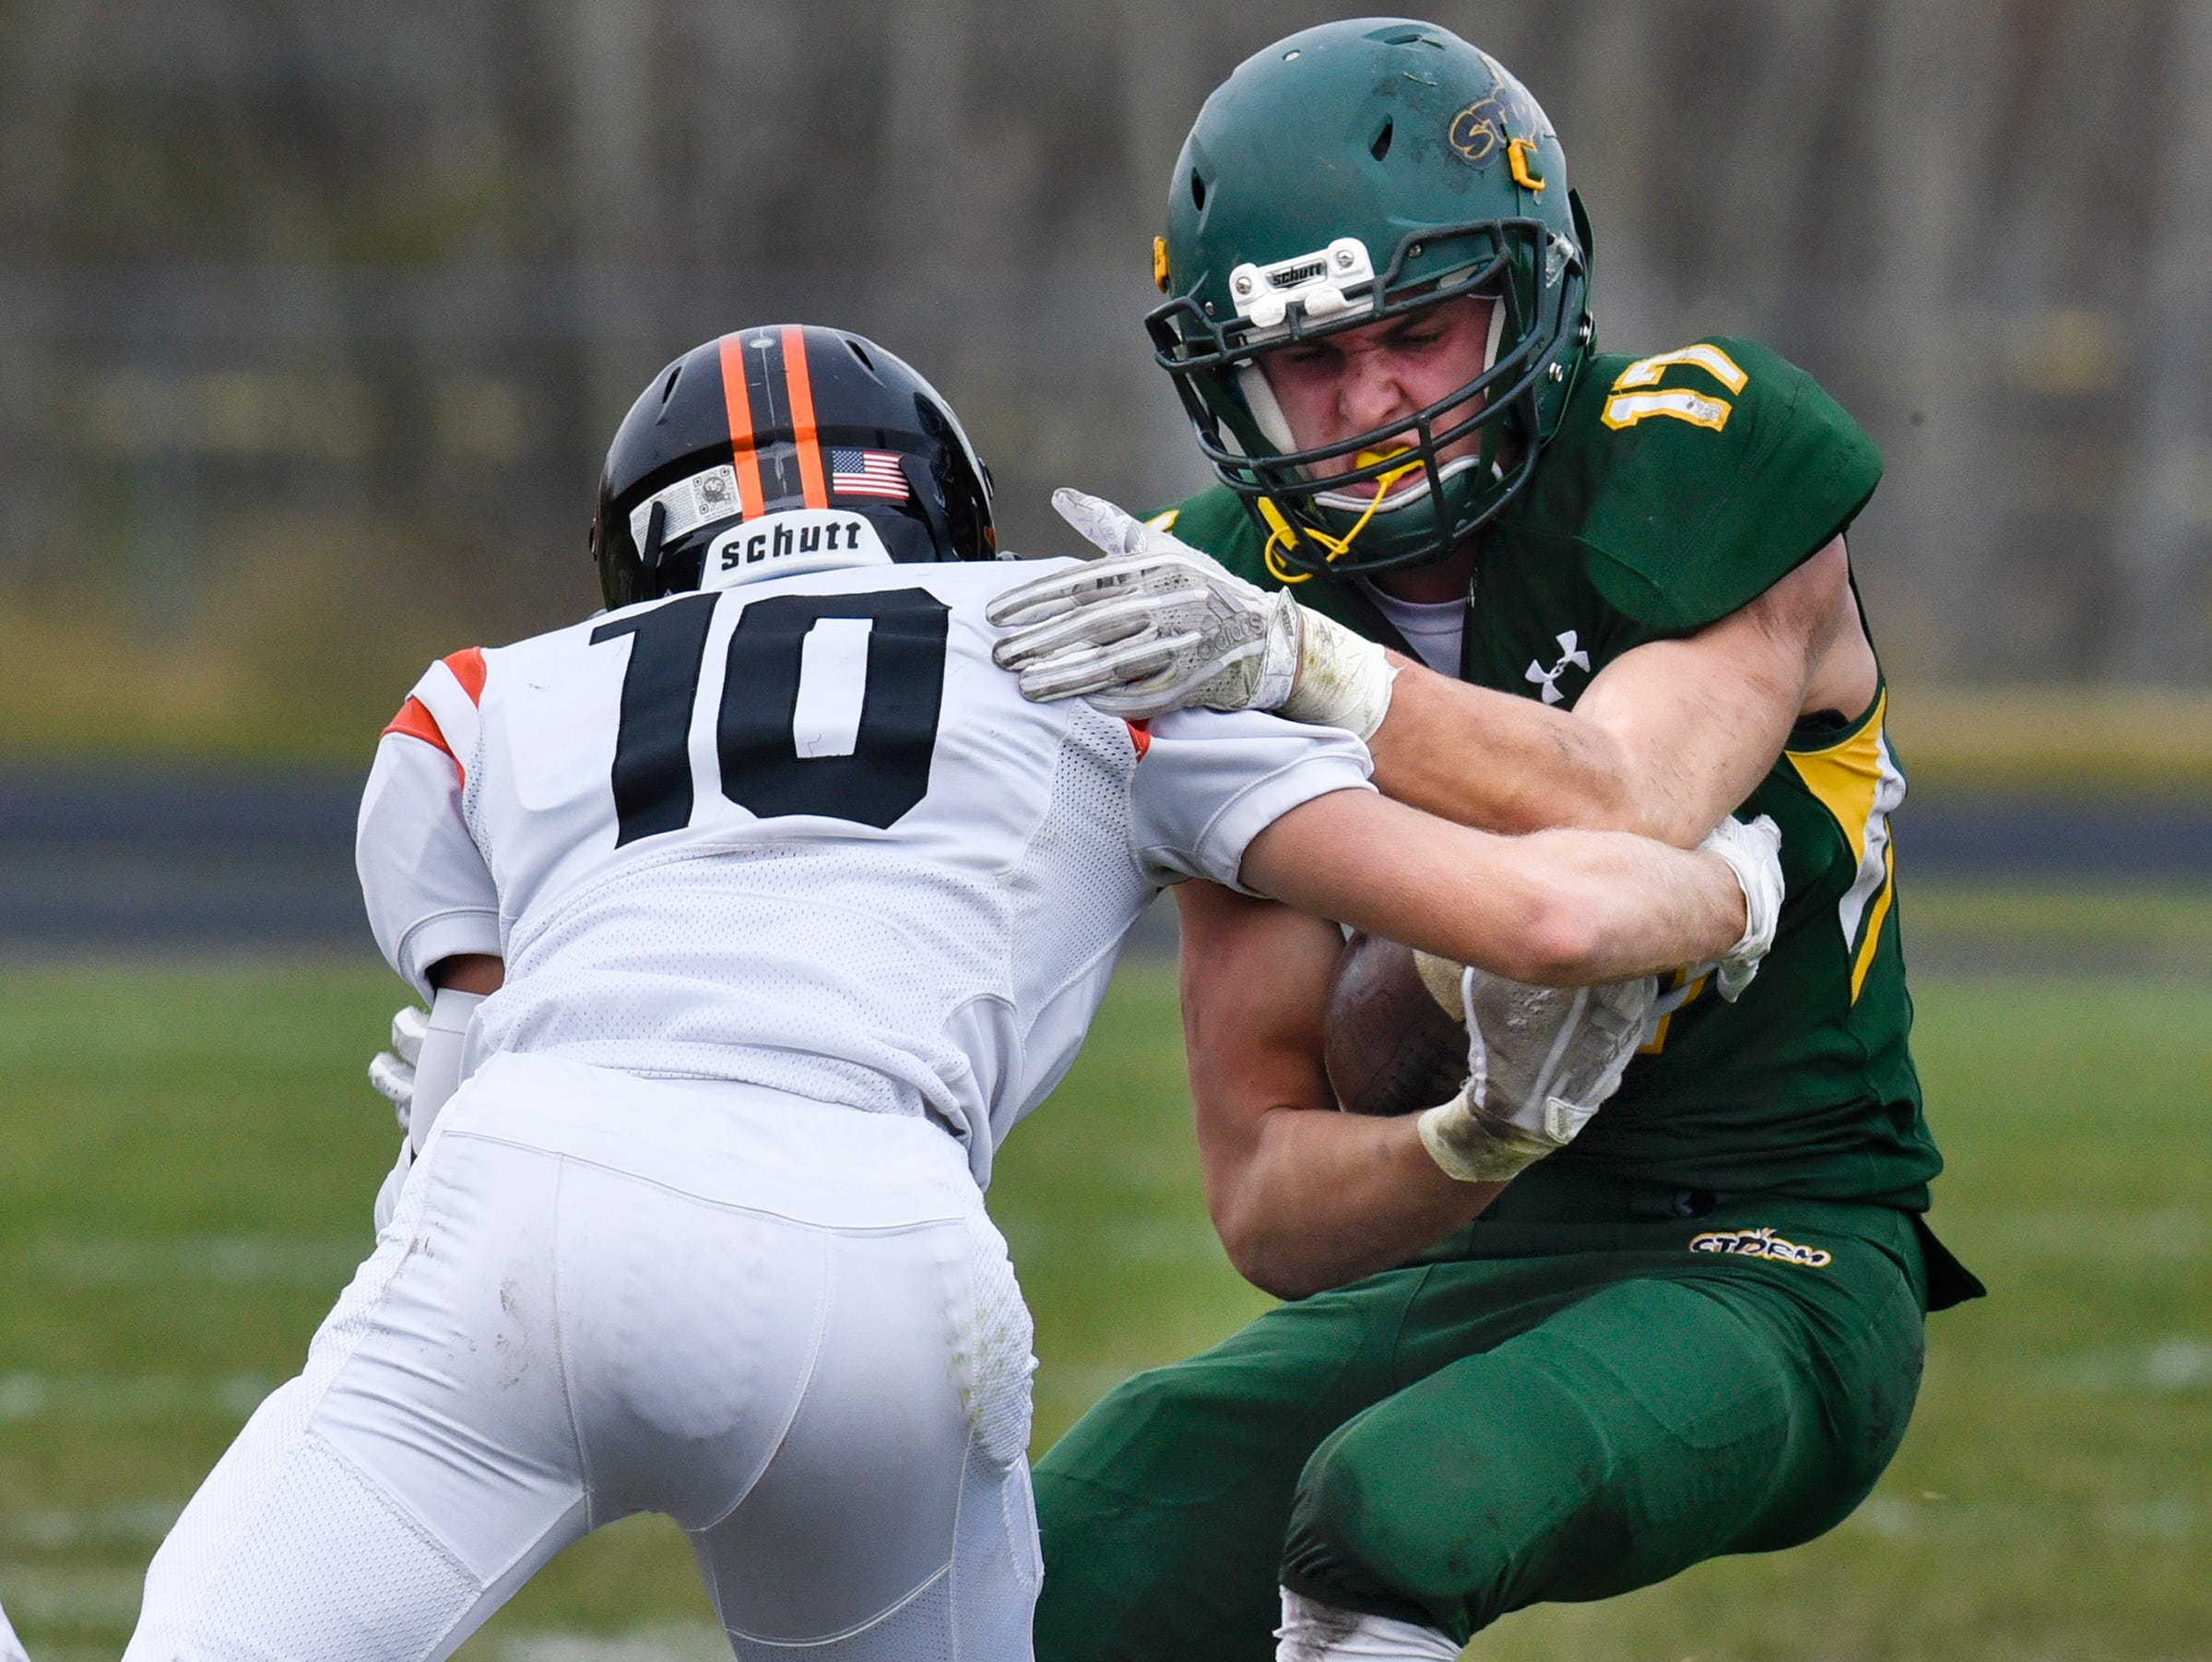 Jake Ackerman carries the ball for Sauk Rapids Saturday, Oct. 27, during the Section 6-5A semifinal game against Tech in Sauk Rapids.